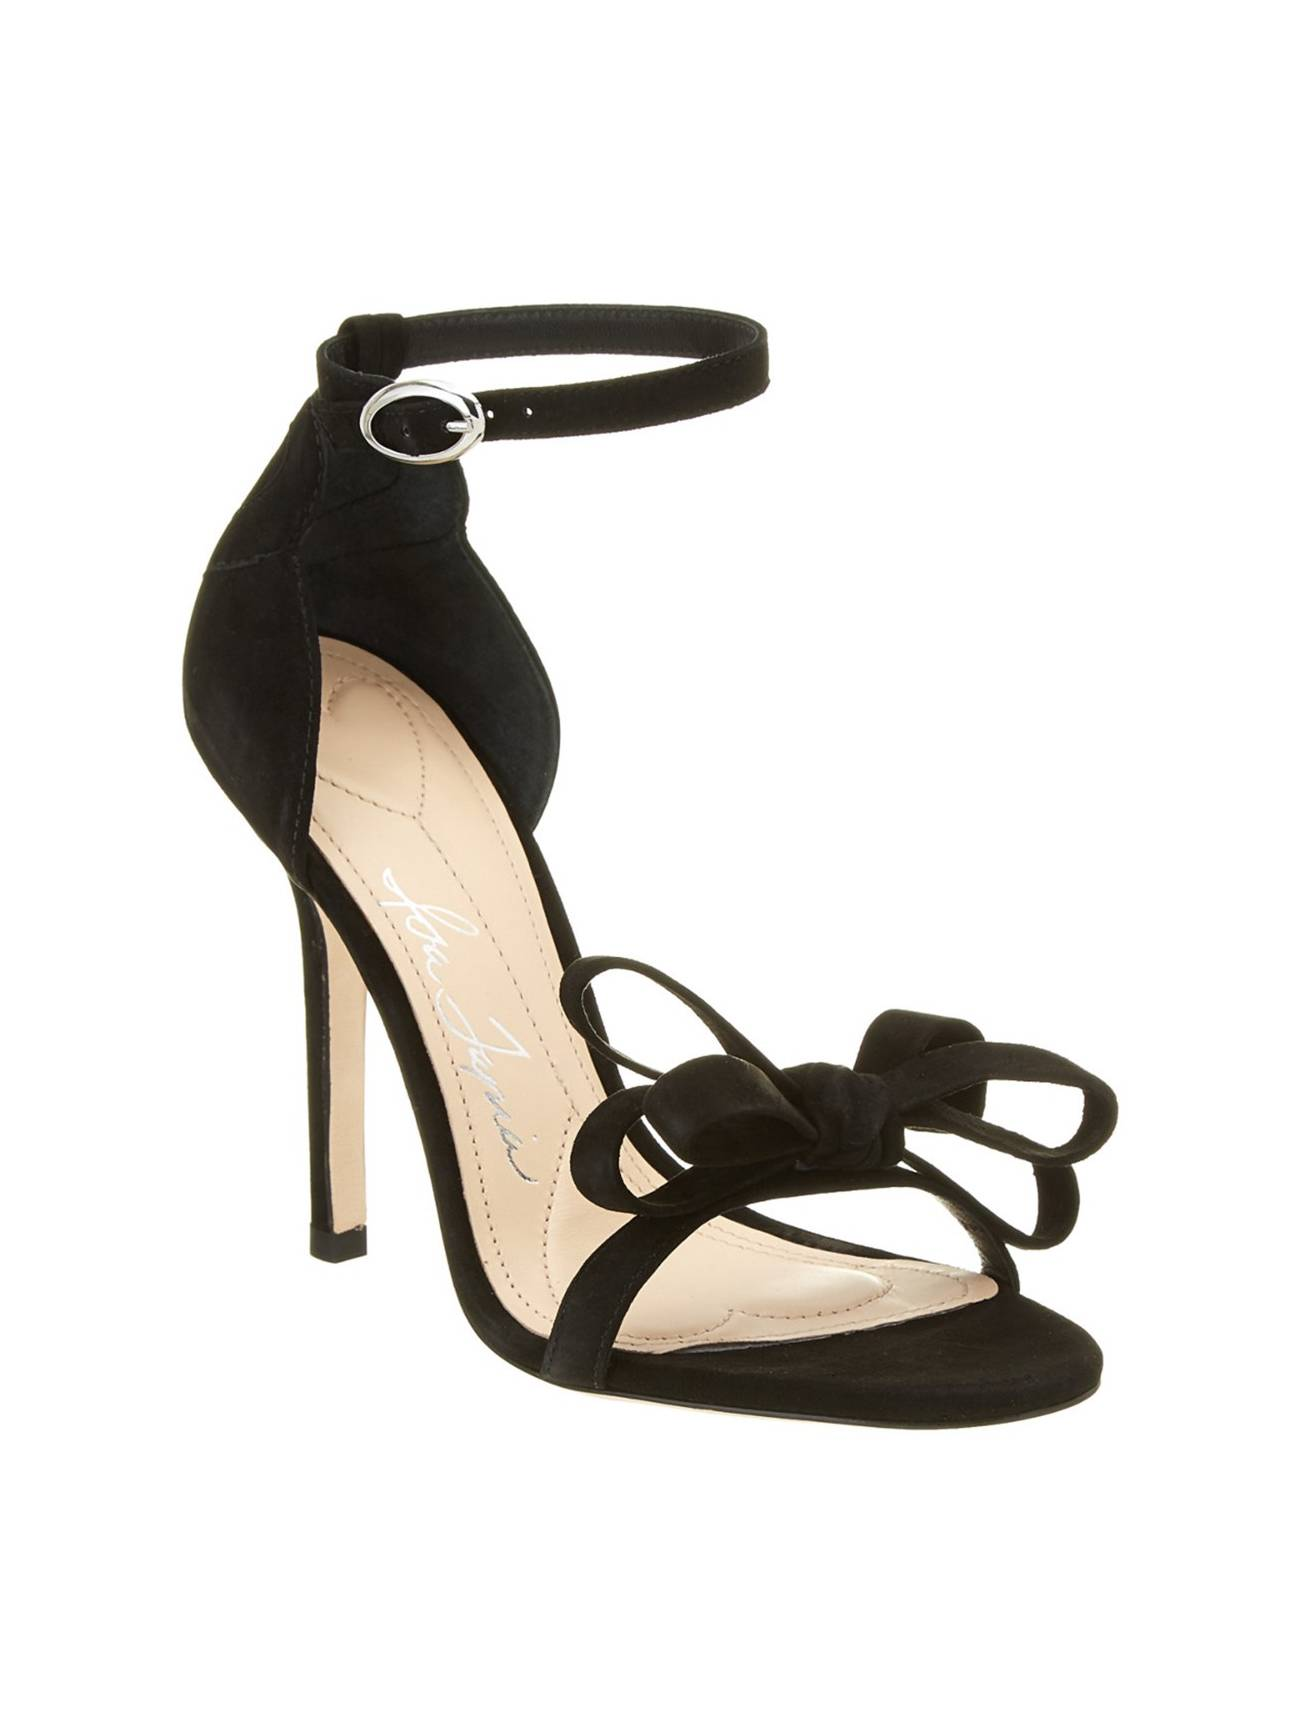 Isa Tapia Shelby Bow Open-Toe Stiletto Heels Sandals Multiple Colors